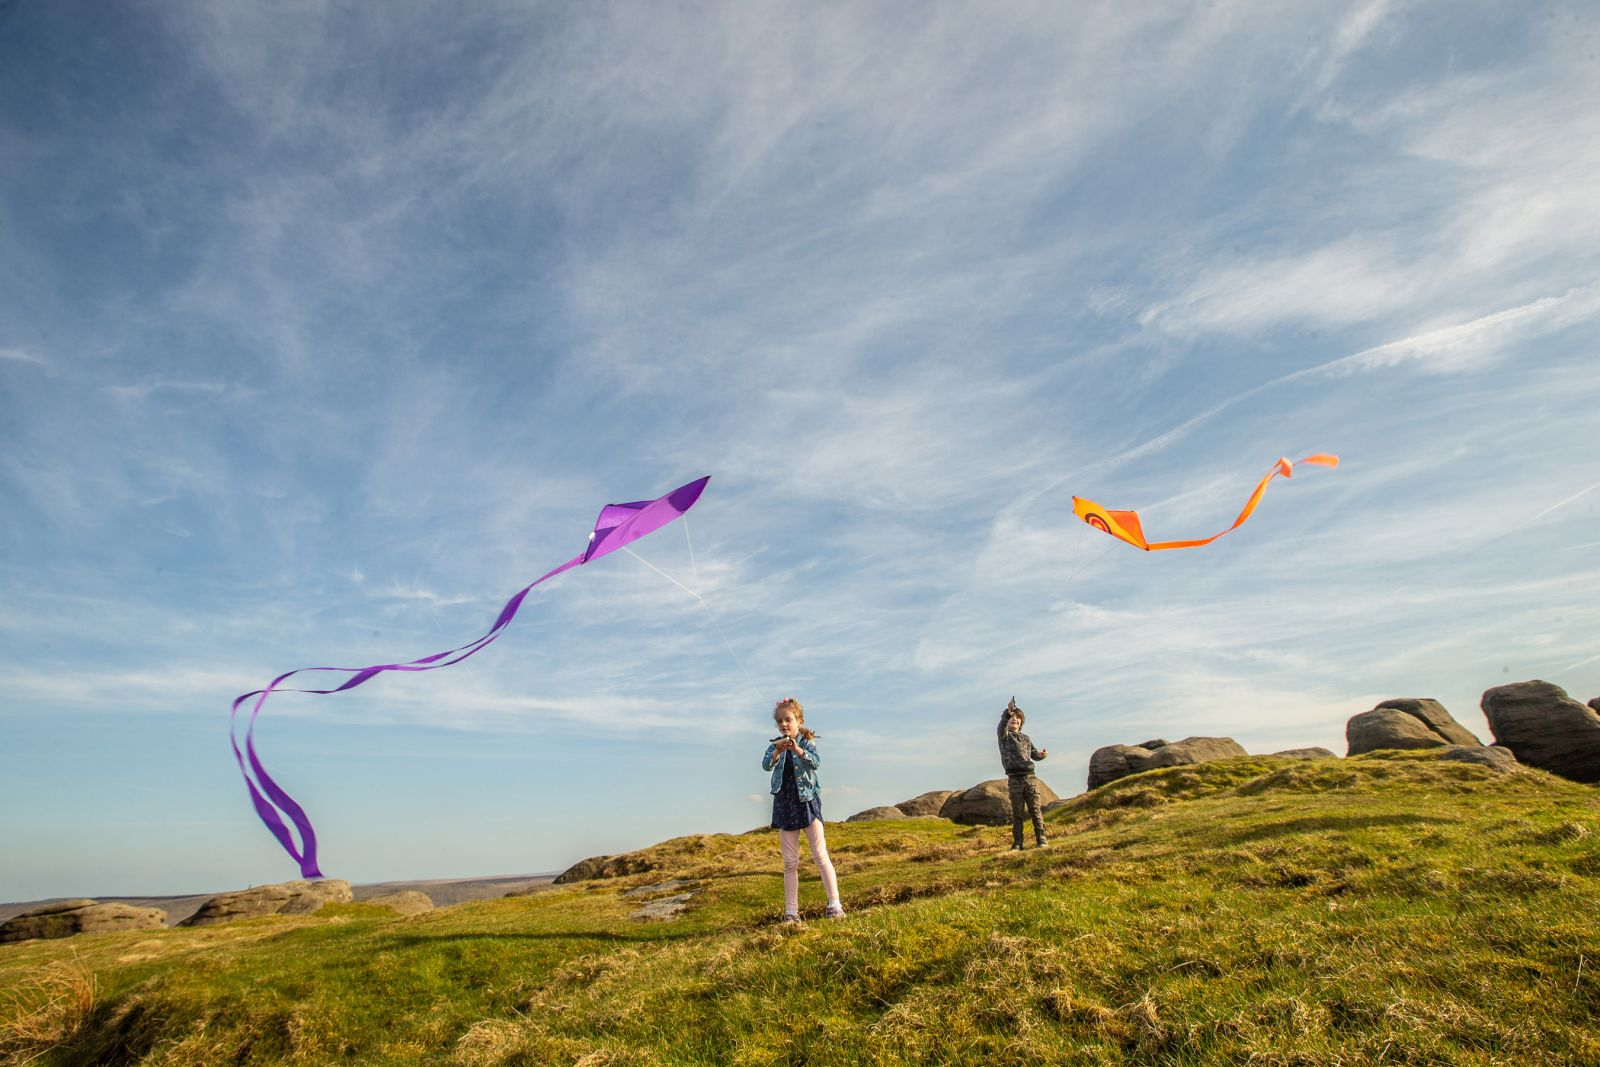 Kite festival in the South Pennines